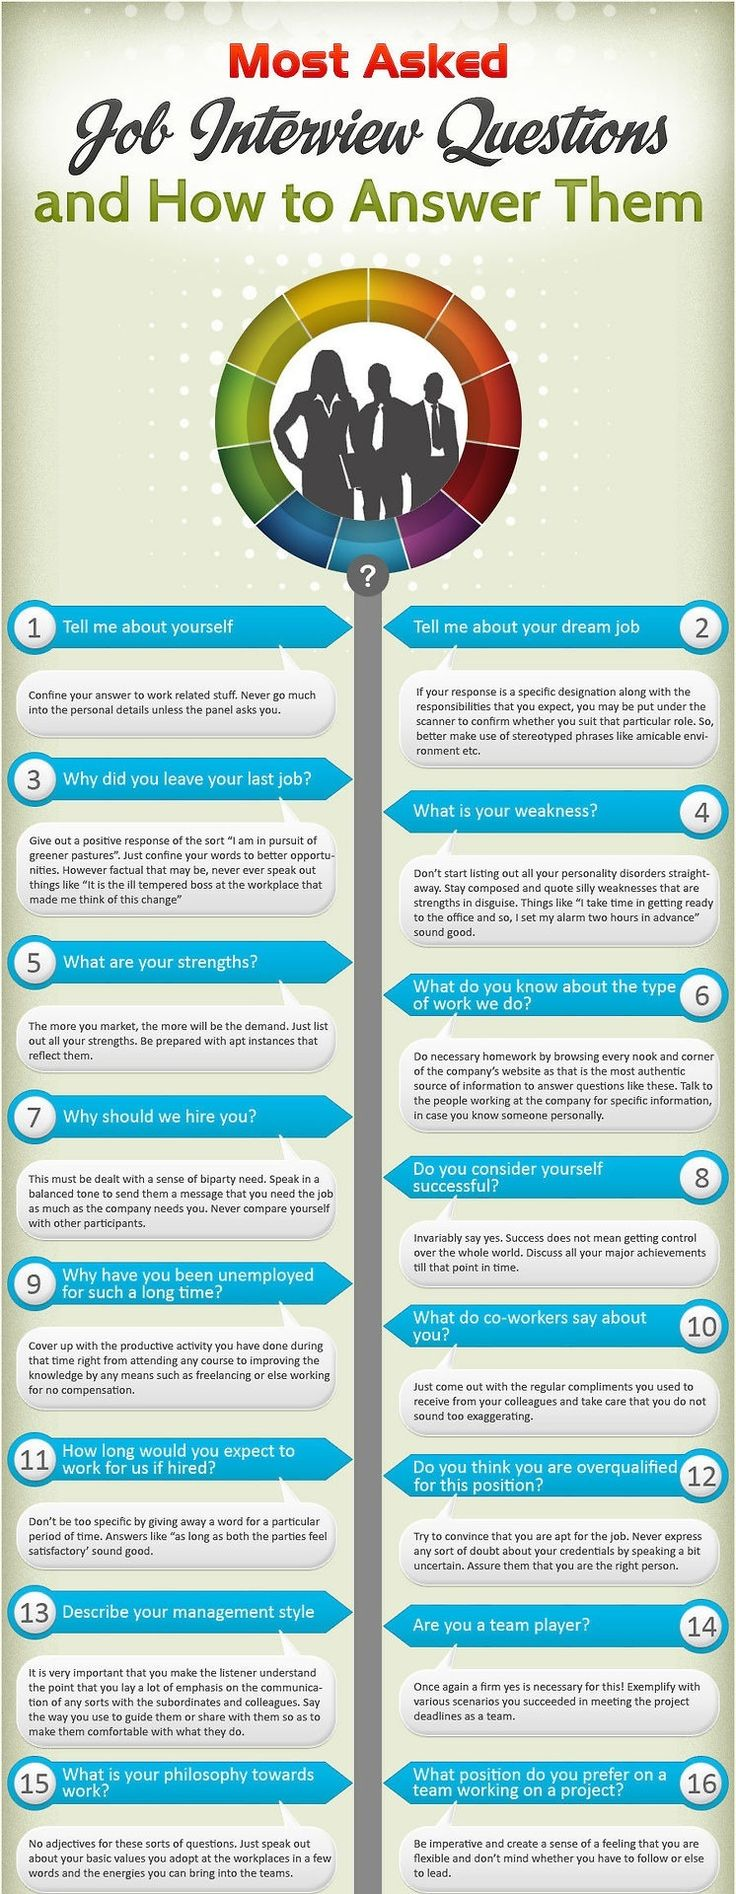 17 best ideas about good interview questions job interview questions and how to answer it the advice is good but really don t tell the interviewer you set your alarm 2 hours early